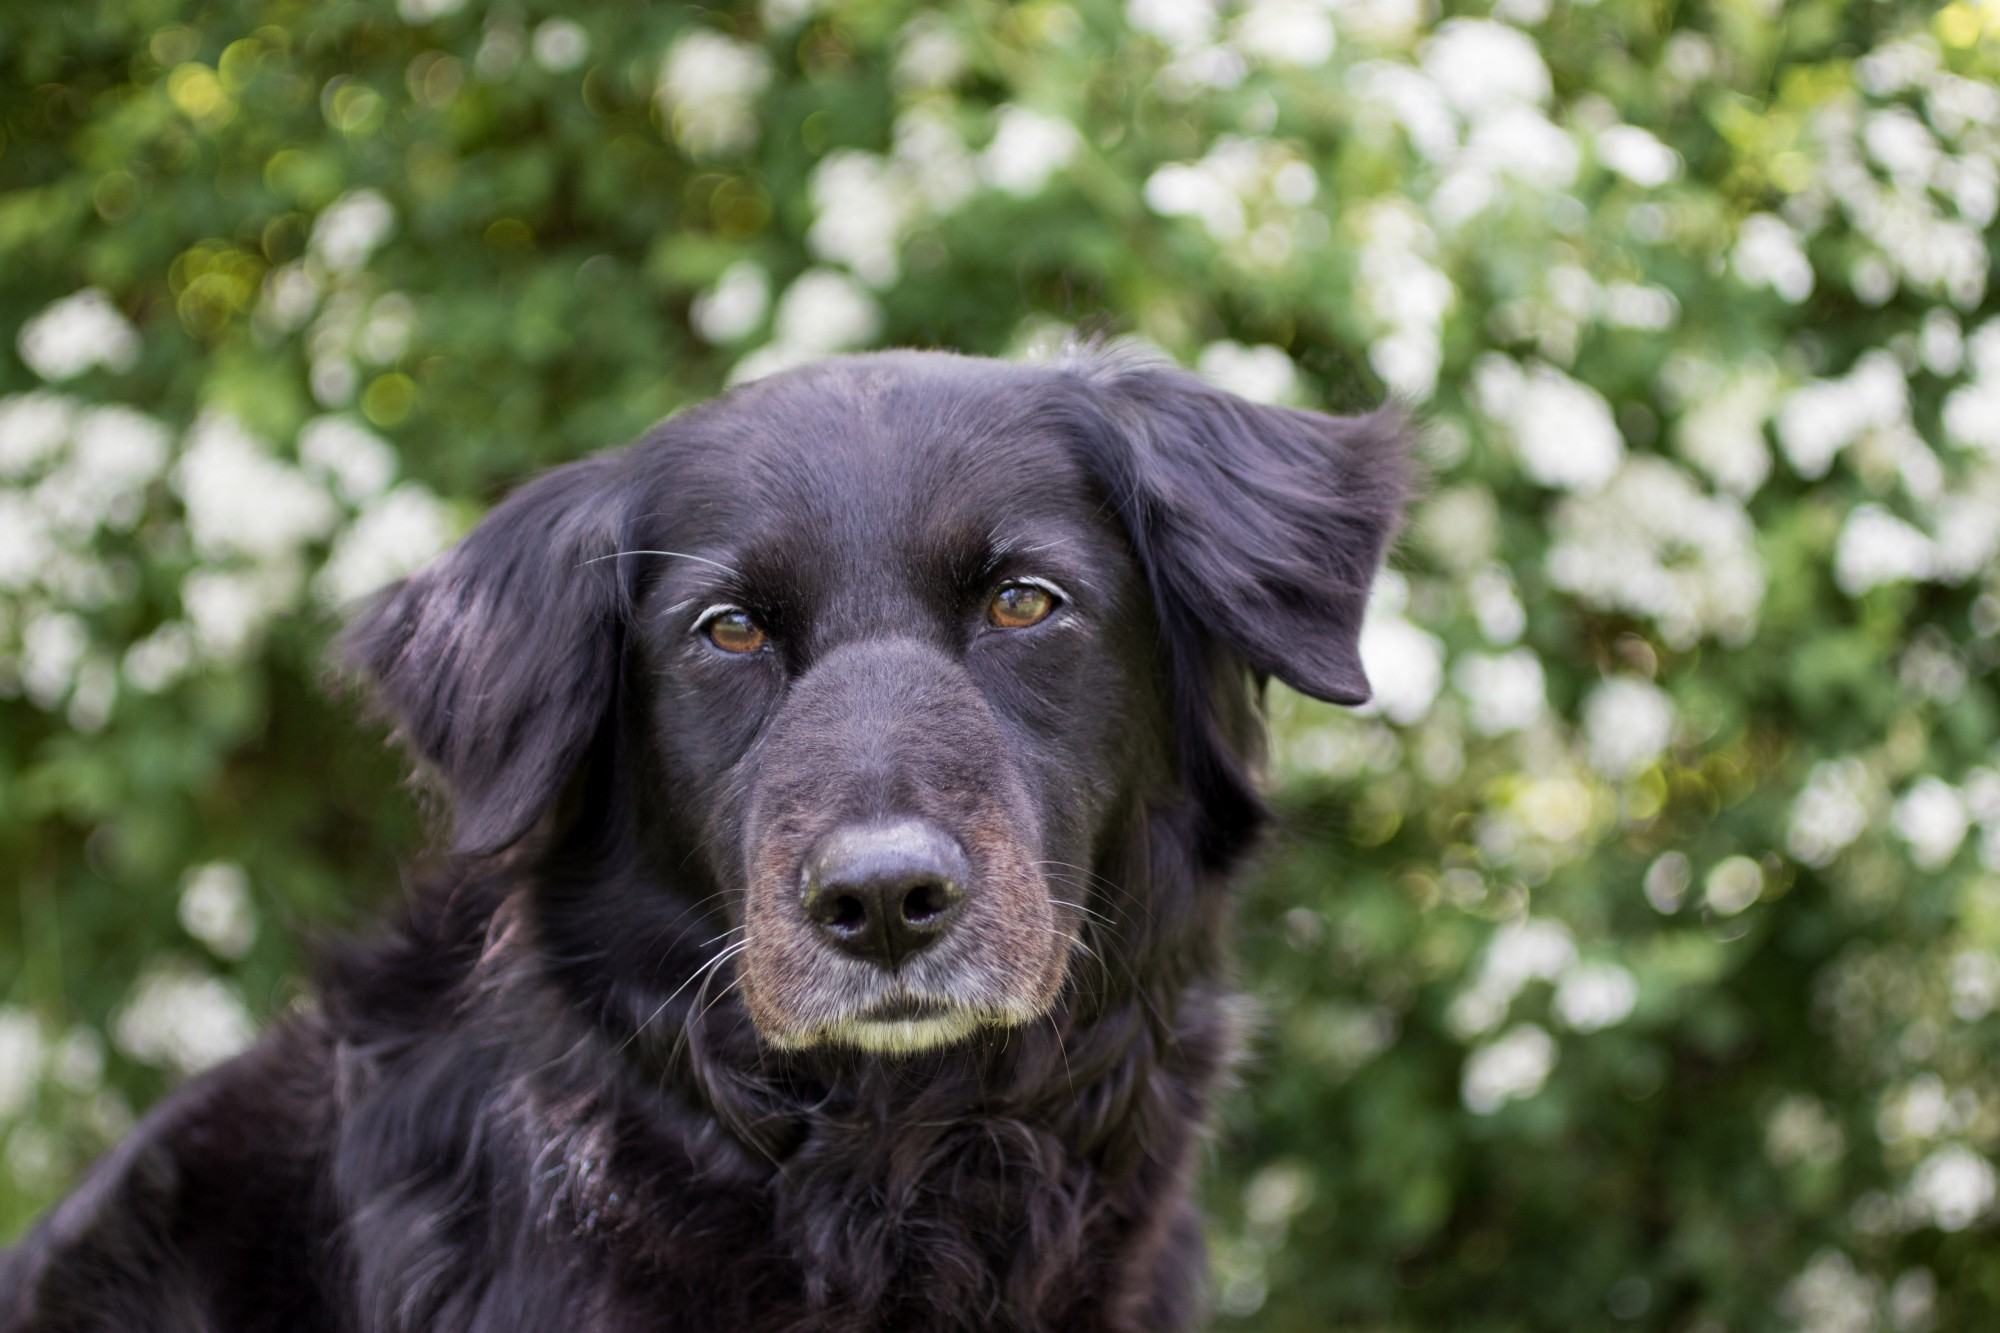 Denise (a black dog) in front of some white and green flowering bushes.